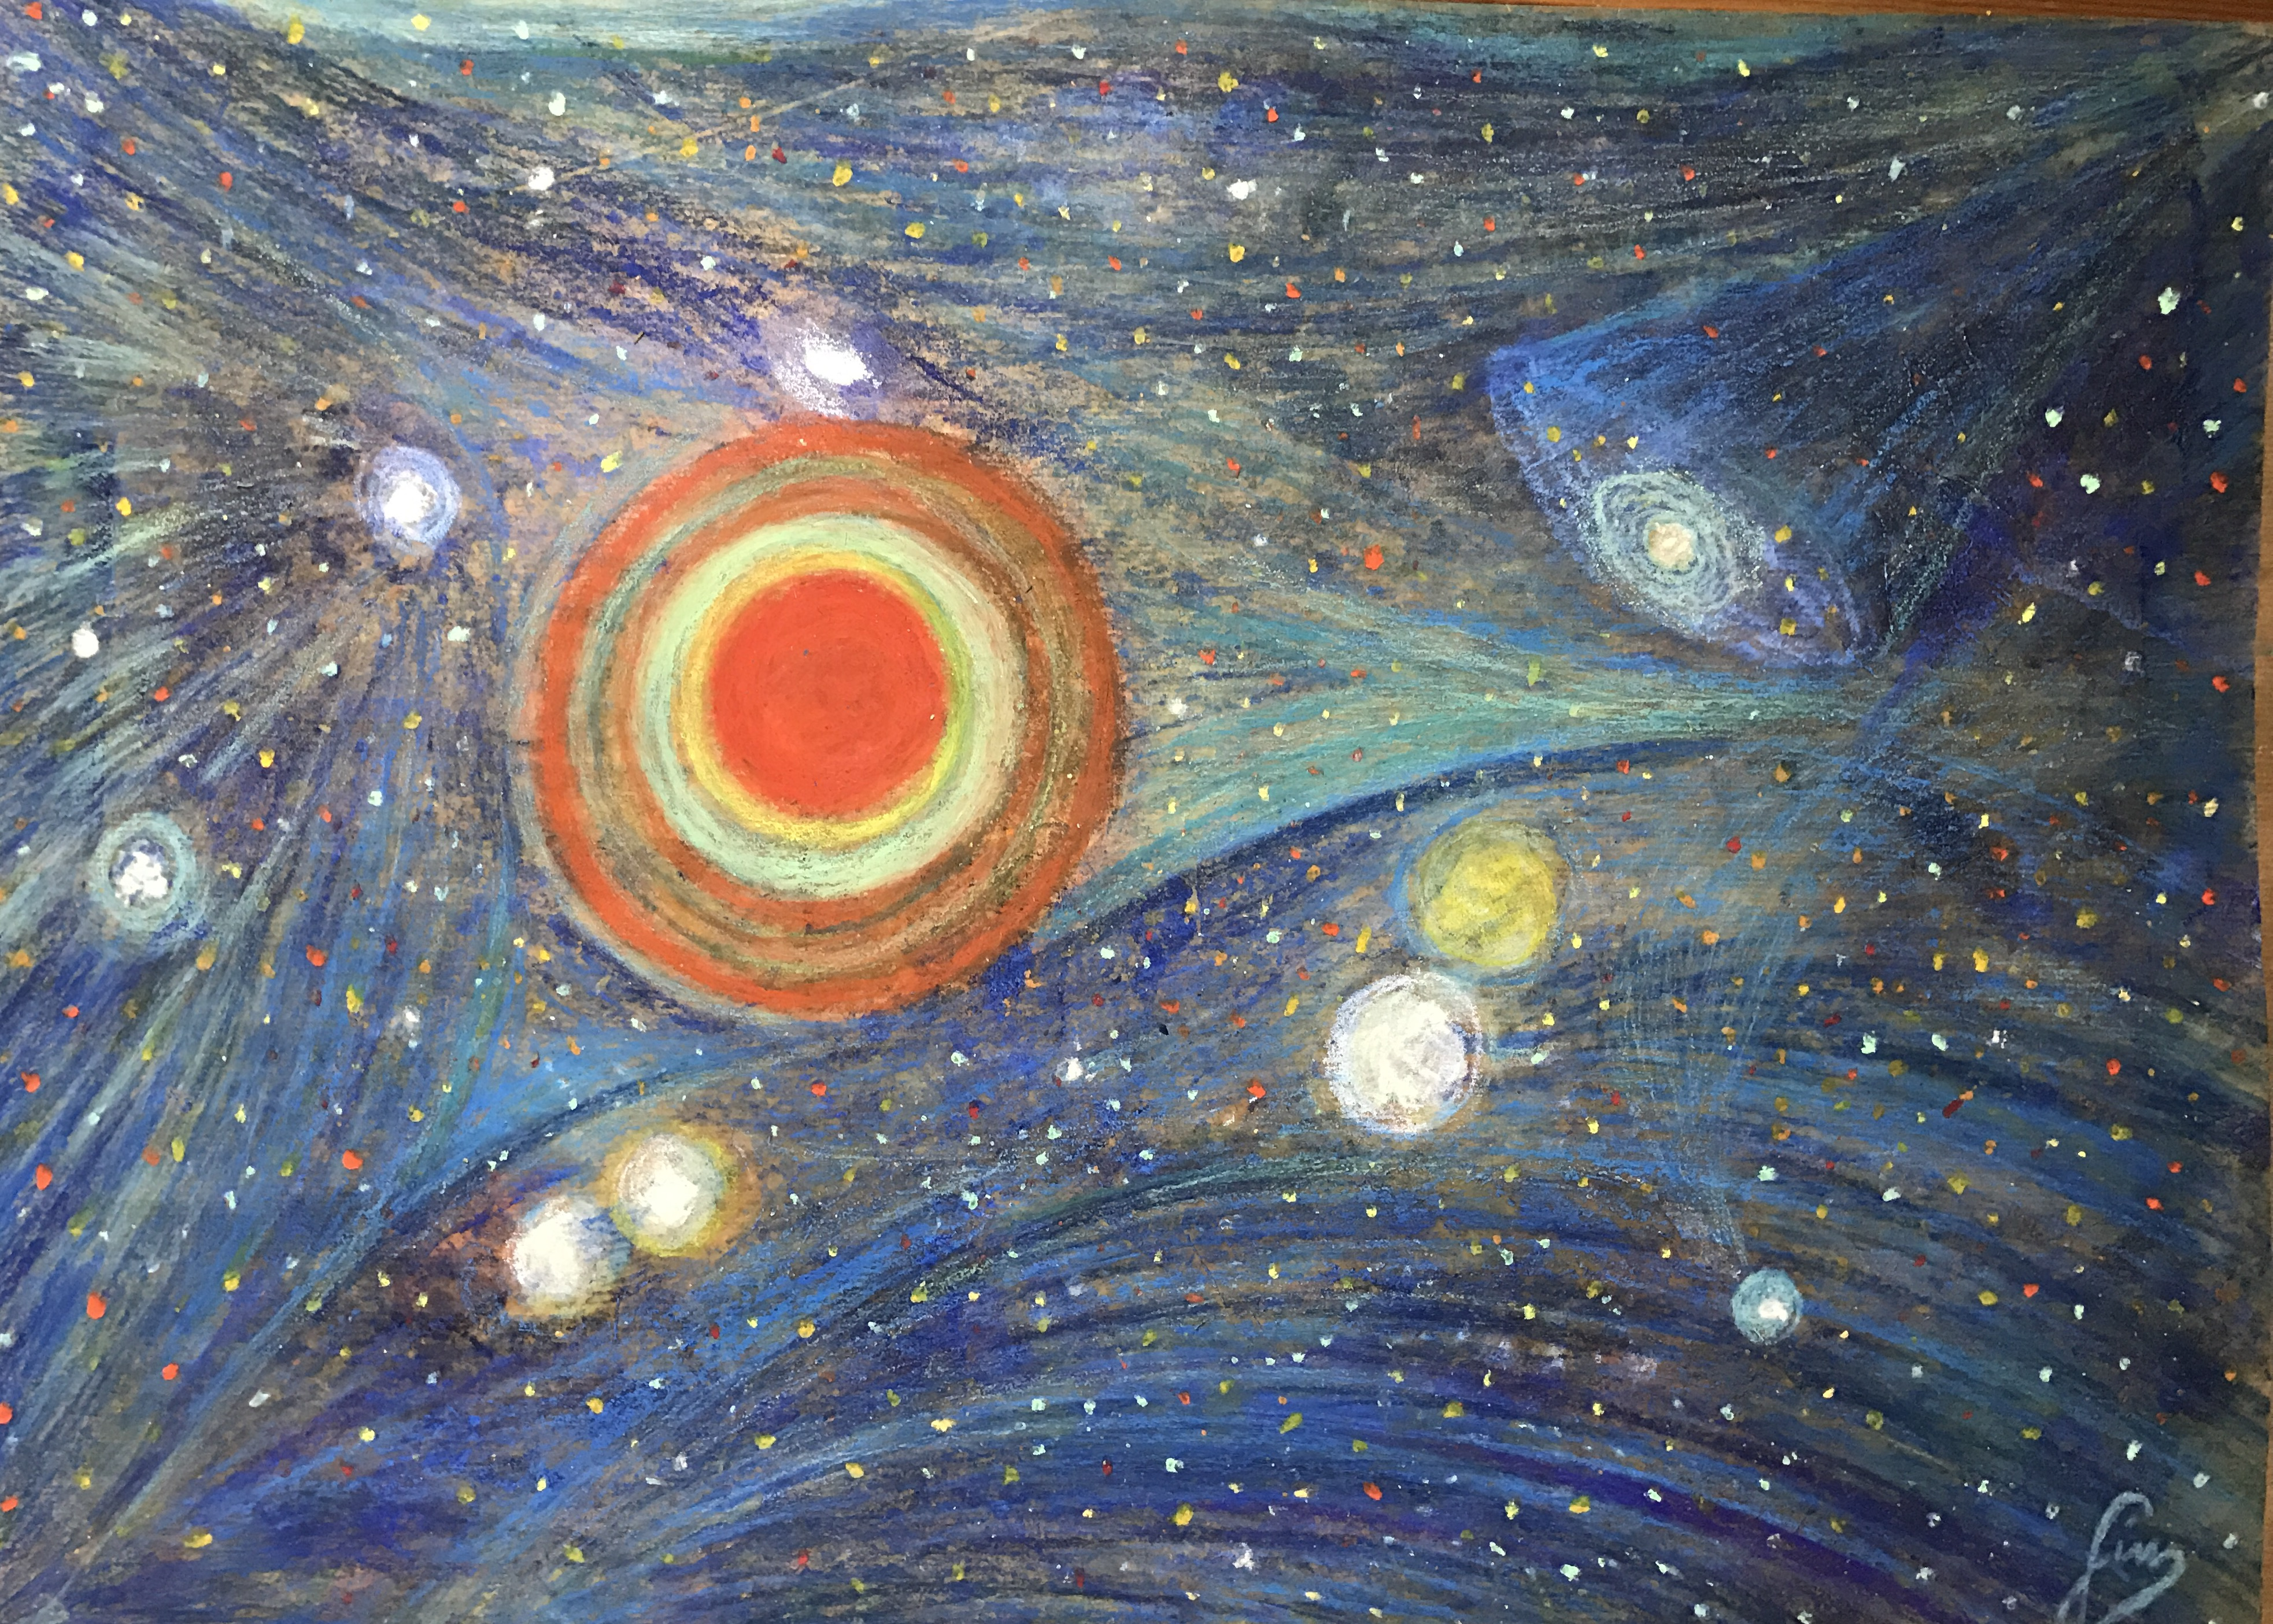 Higg's Boson in Fronteversismo and Peace. Author of the paiting and of the animation: Giuseppe Sinicalchi, 2018